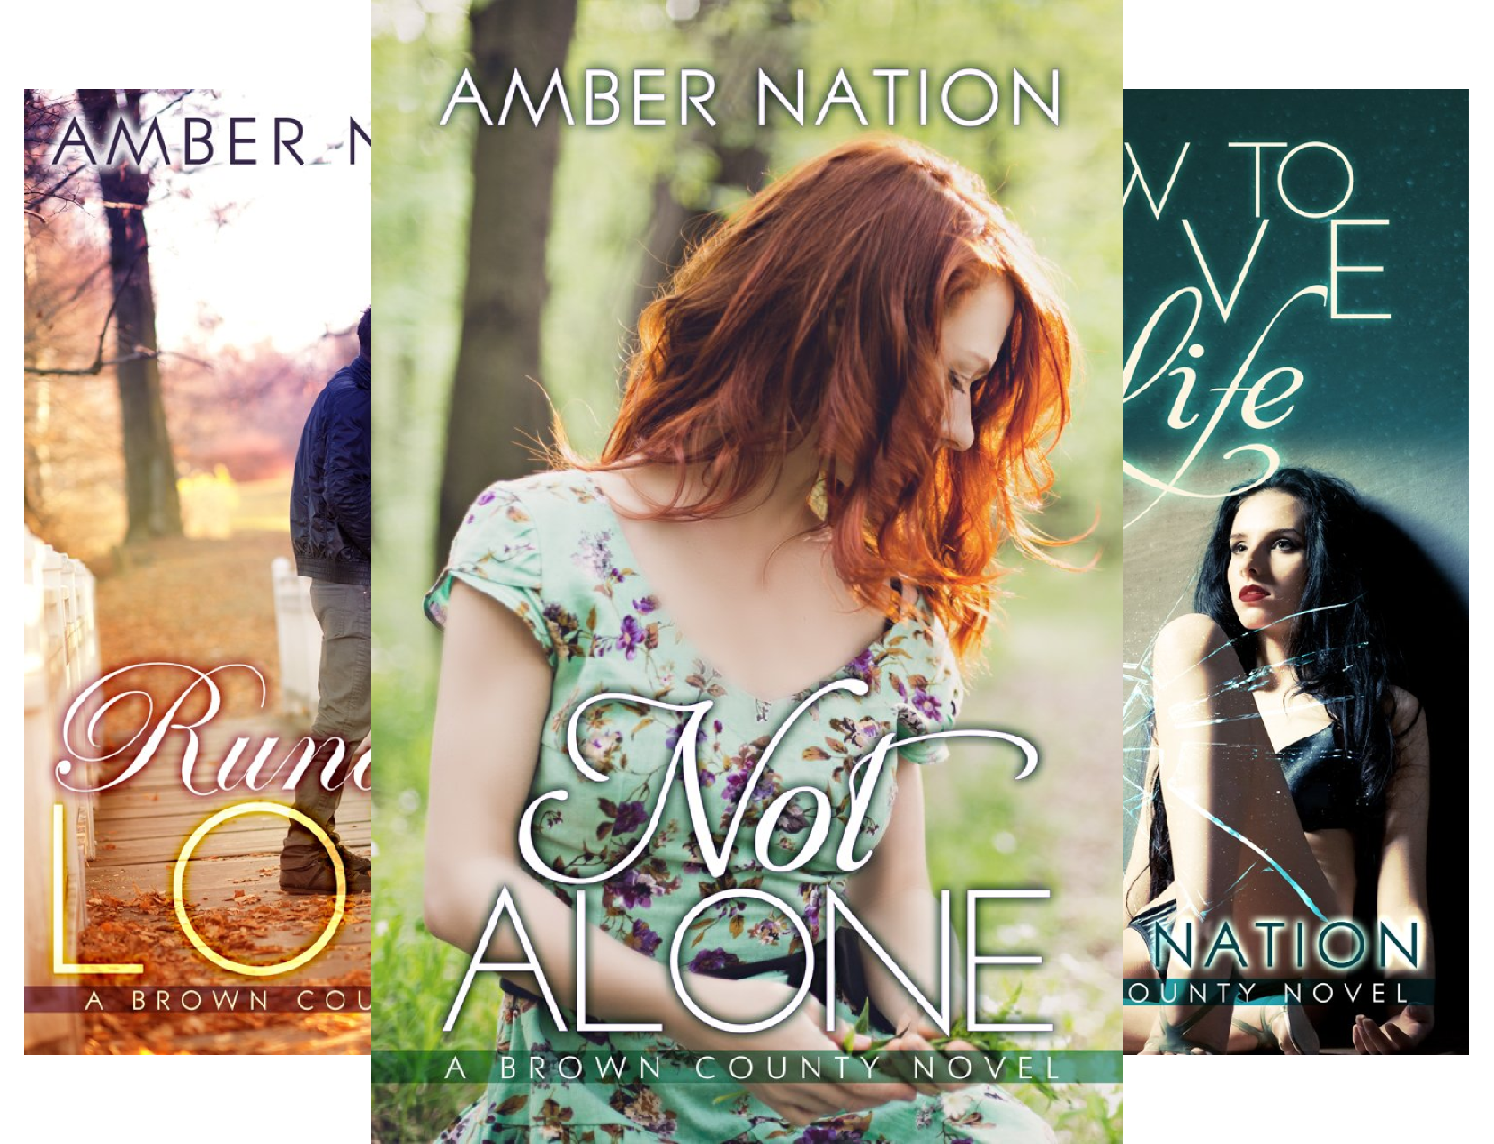 Brown County (4 Book Series) (Amber Nation Books)